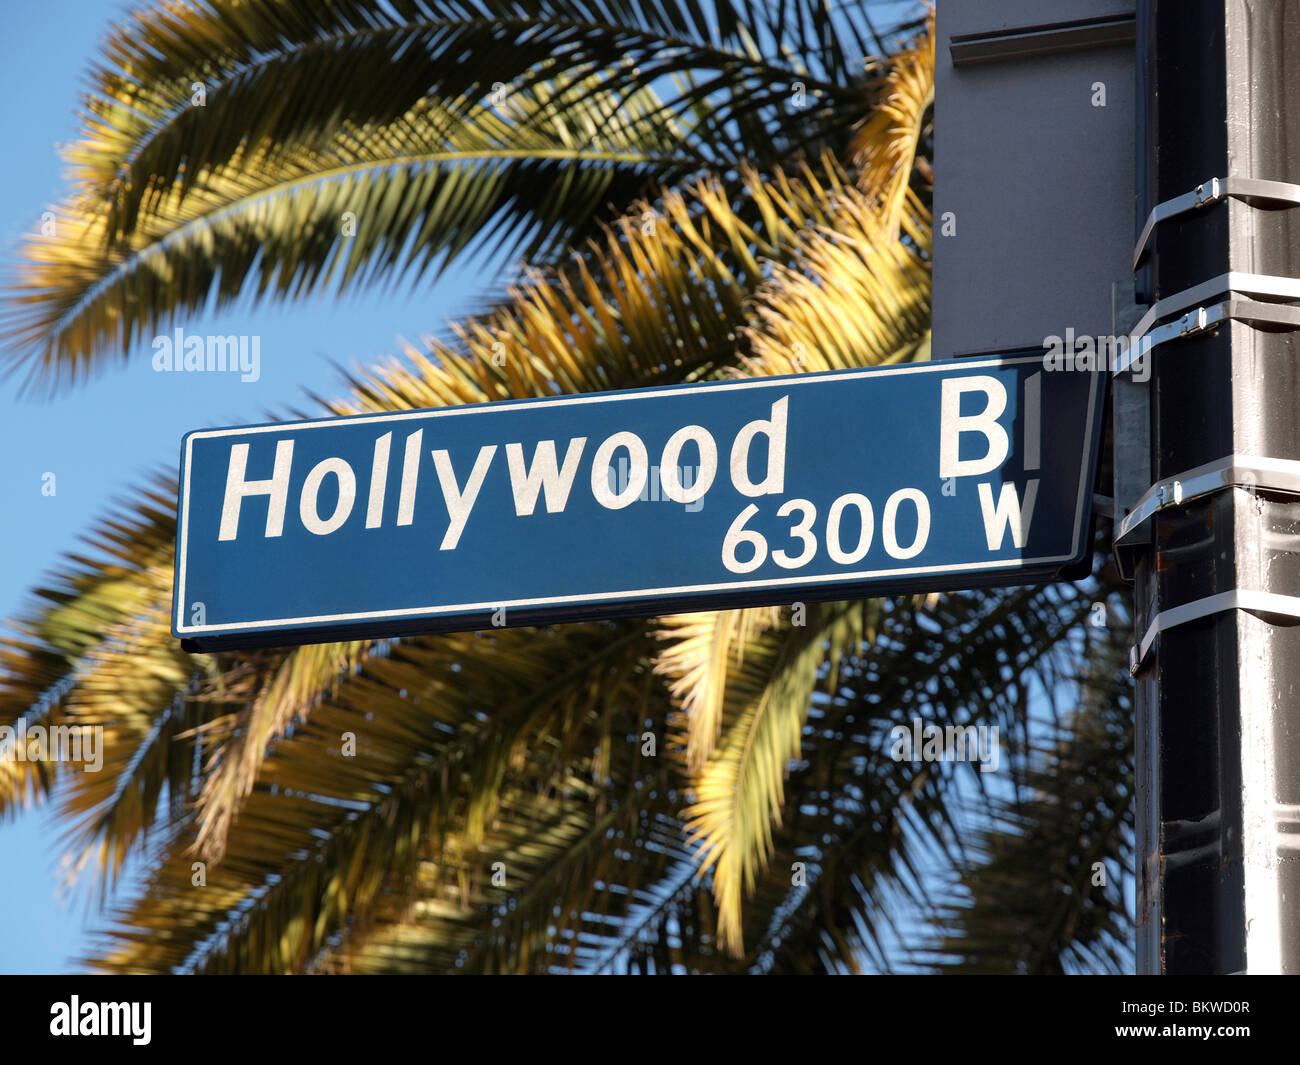 Hollywood Blvd street sign with tall palm trees. - Stock Image